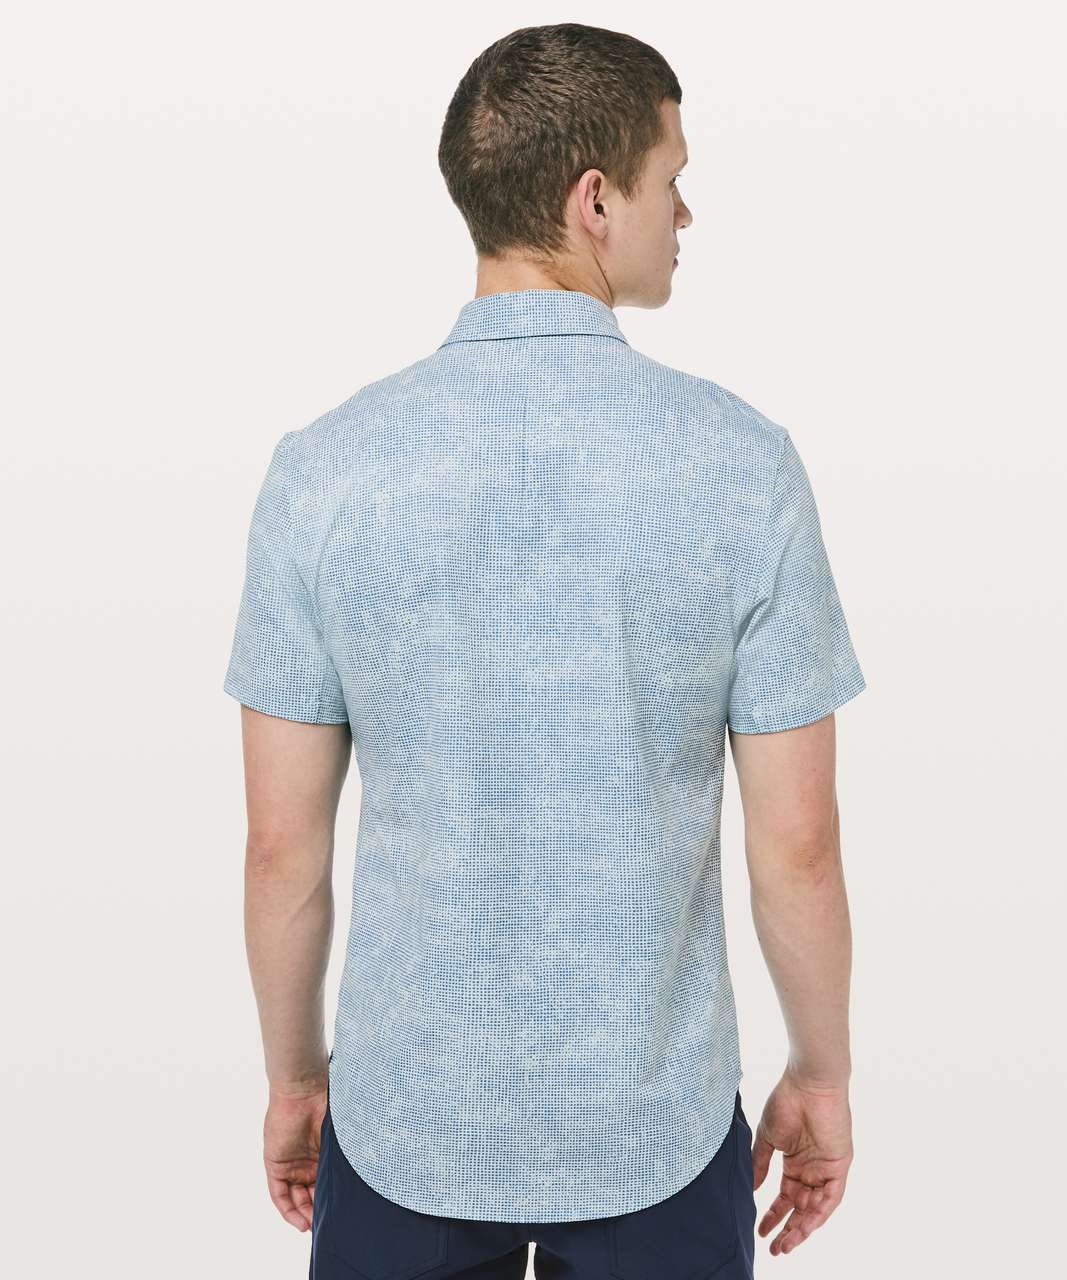 Lululemon Airing Easy Short Sleeve Buttondown - Microcube Storm Blue Utility Blue